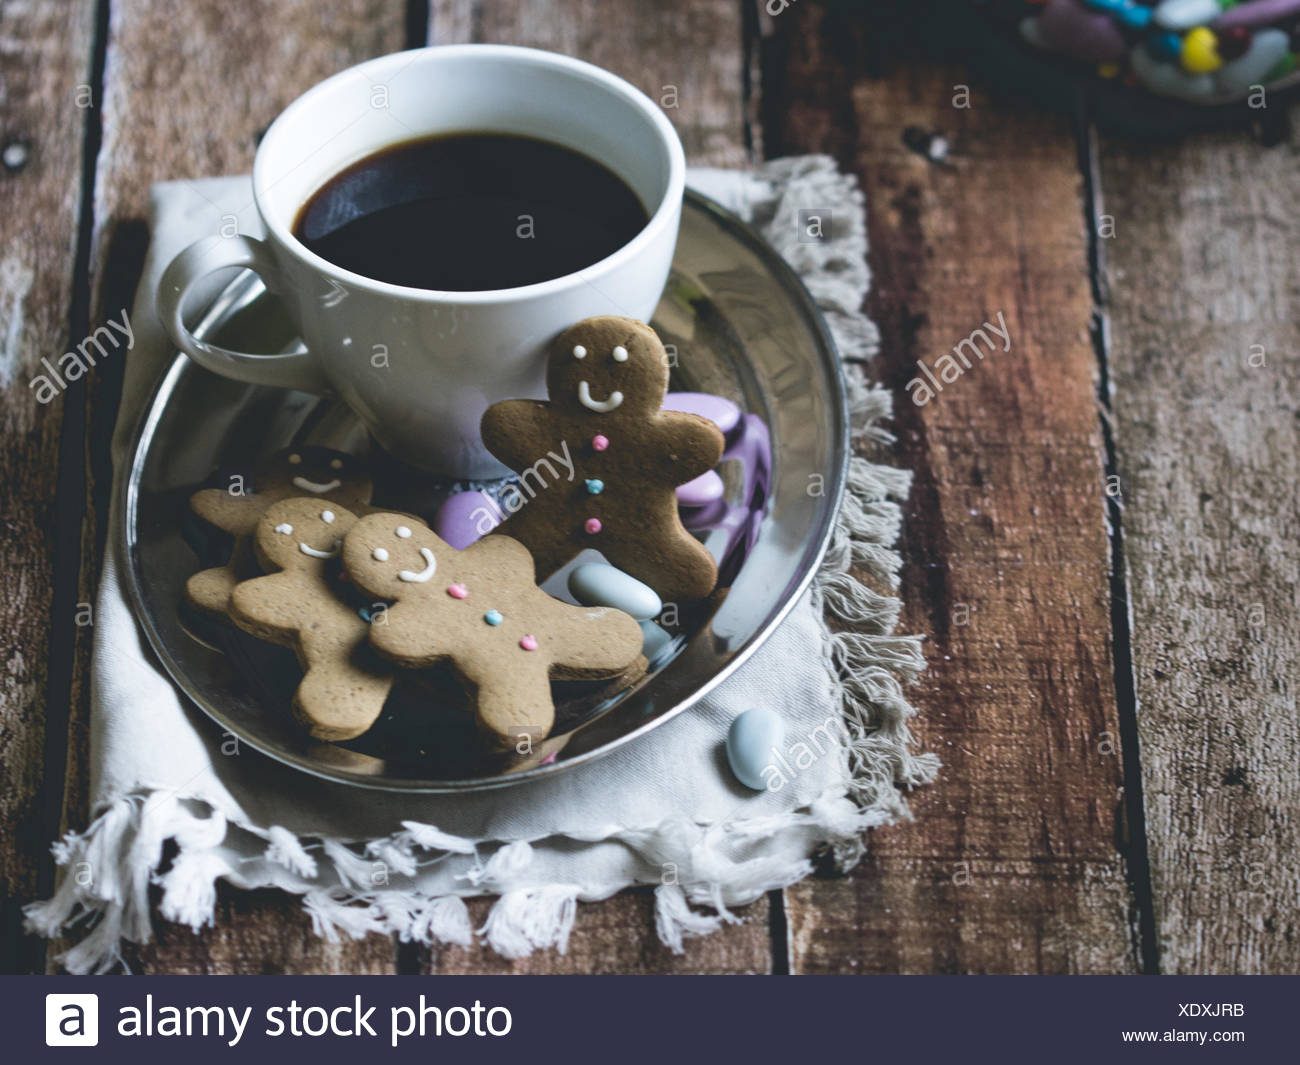 Coffee and gingerbread men - Stock Image